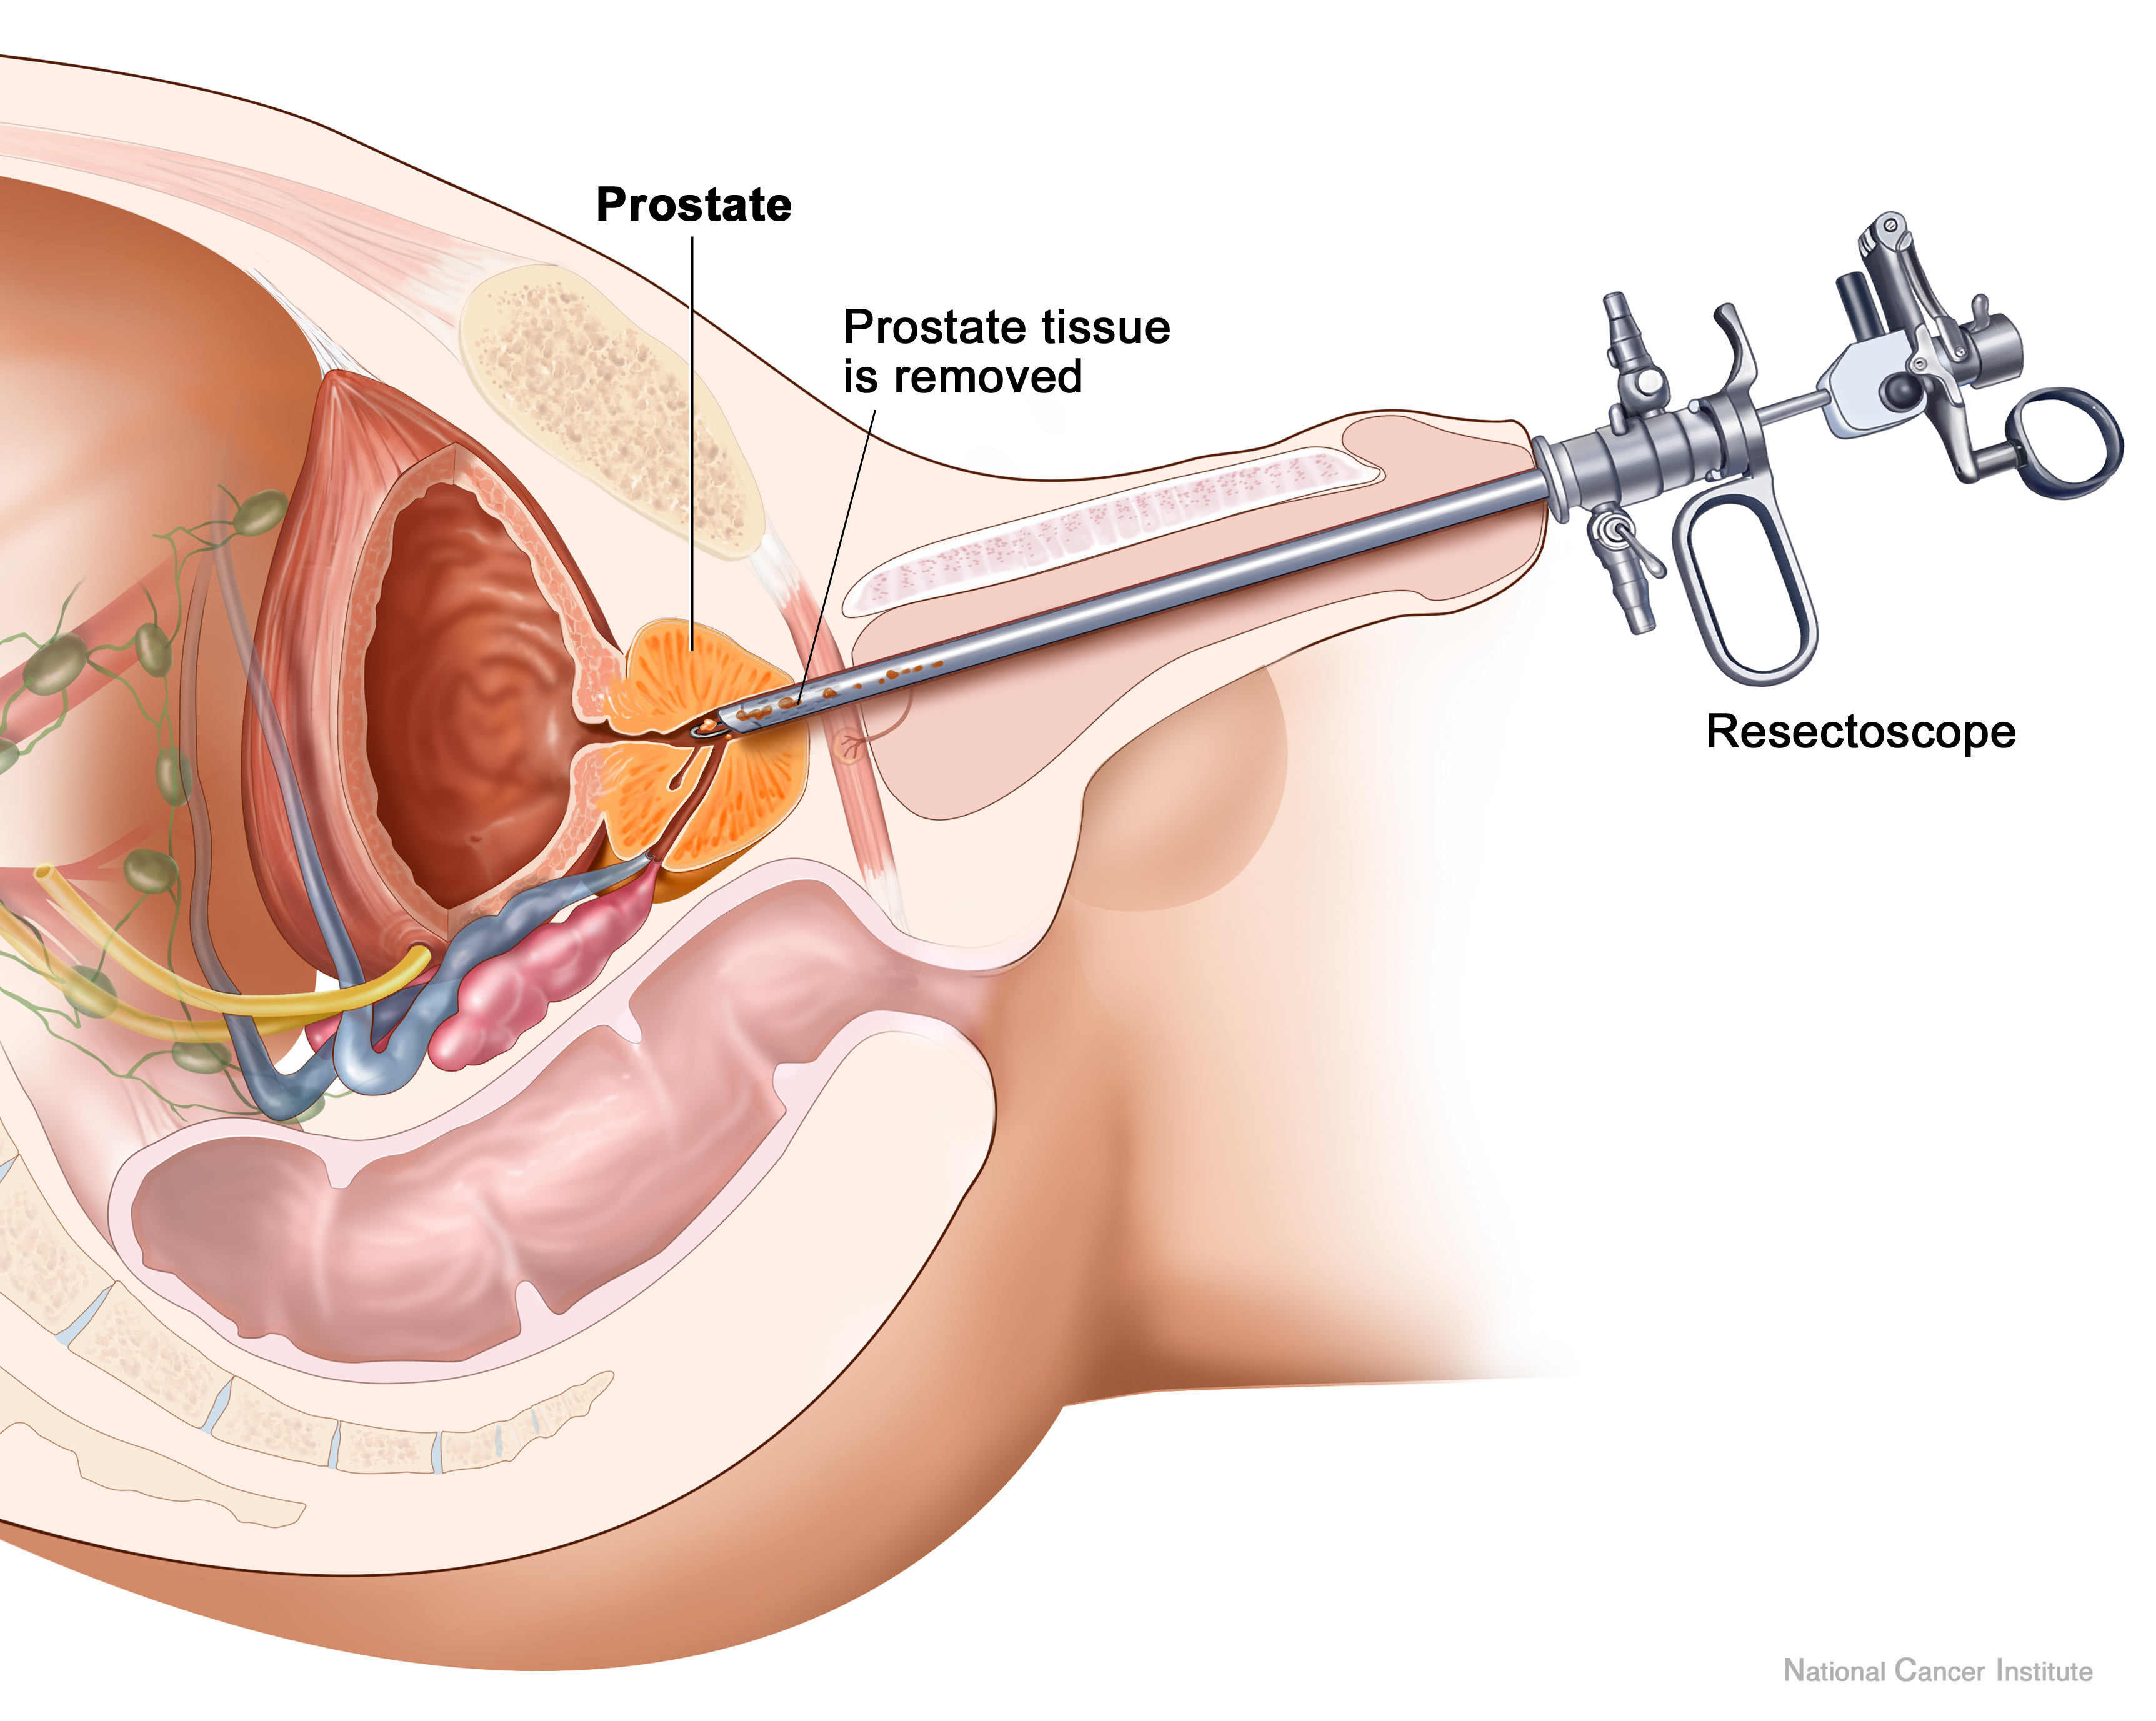 Transurethral prostate resection is a procedure where cellular ...